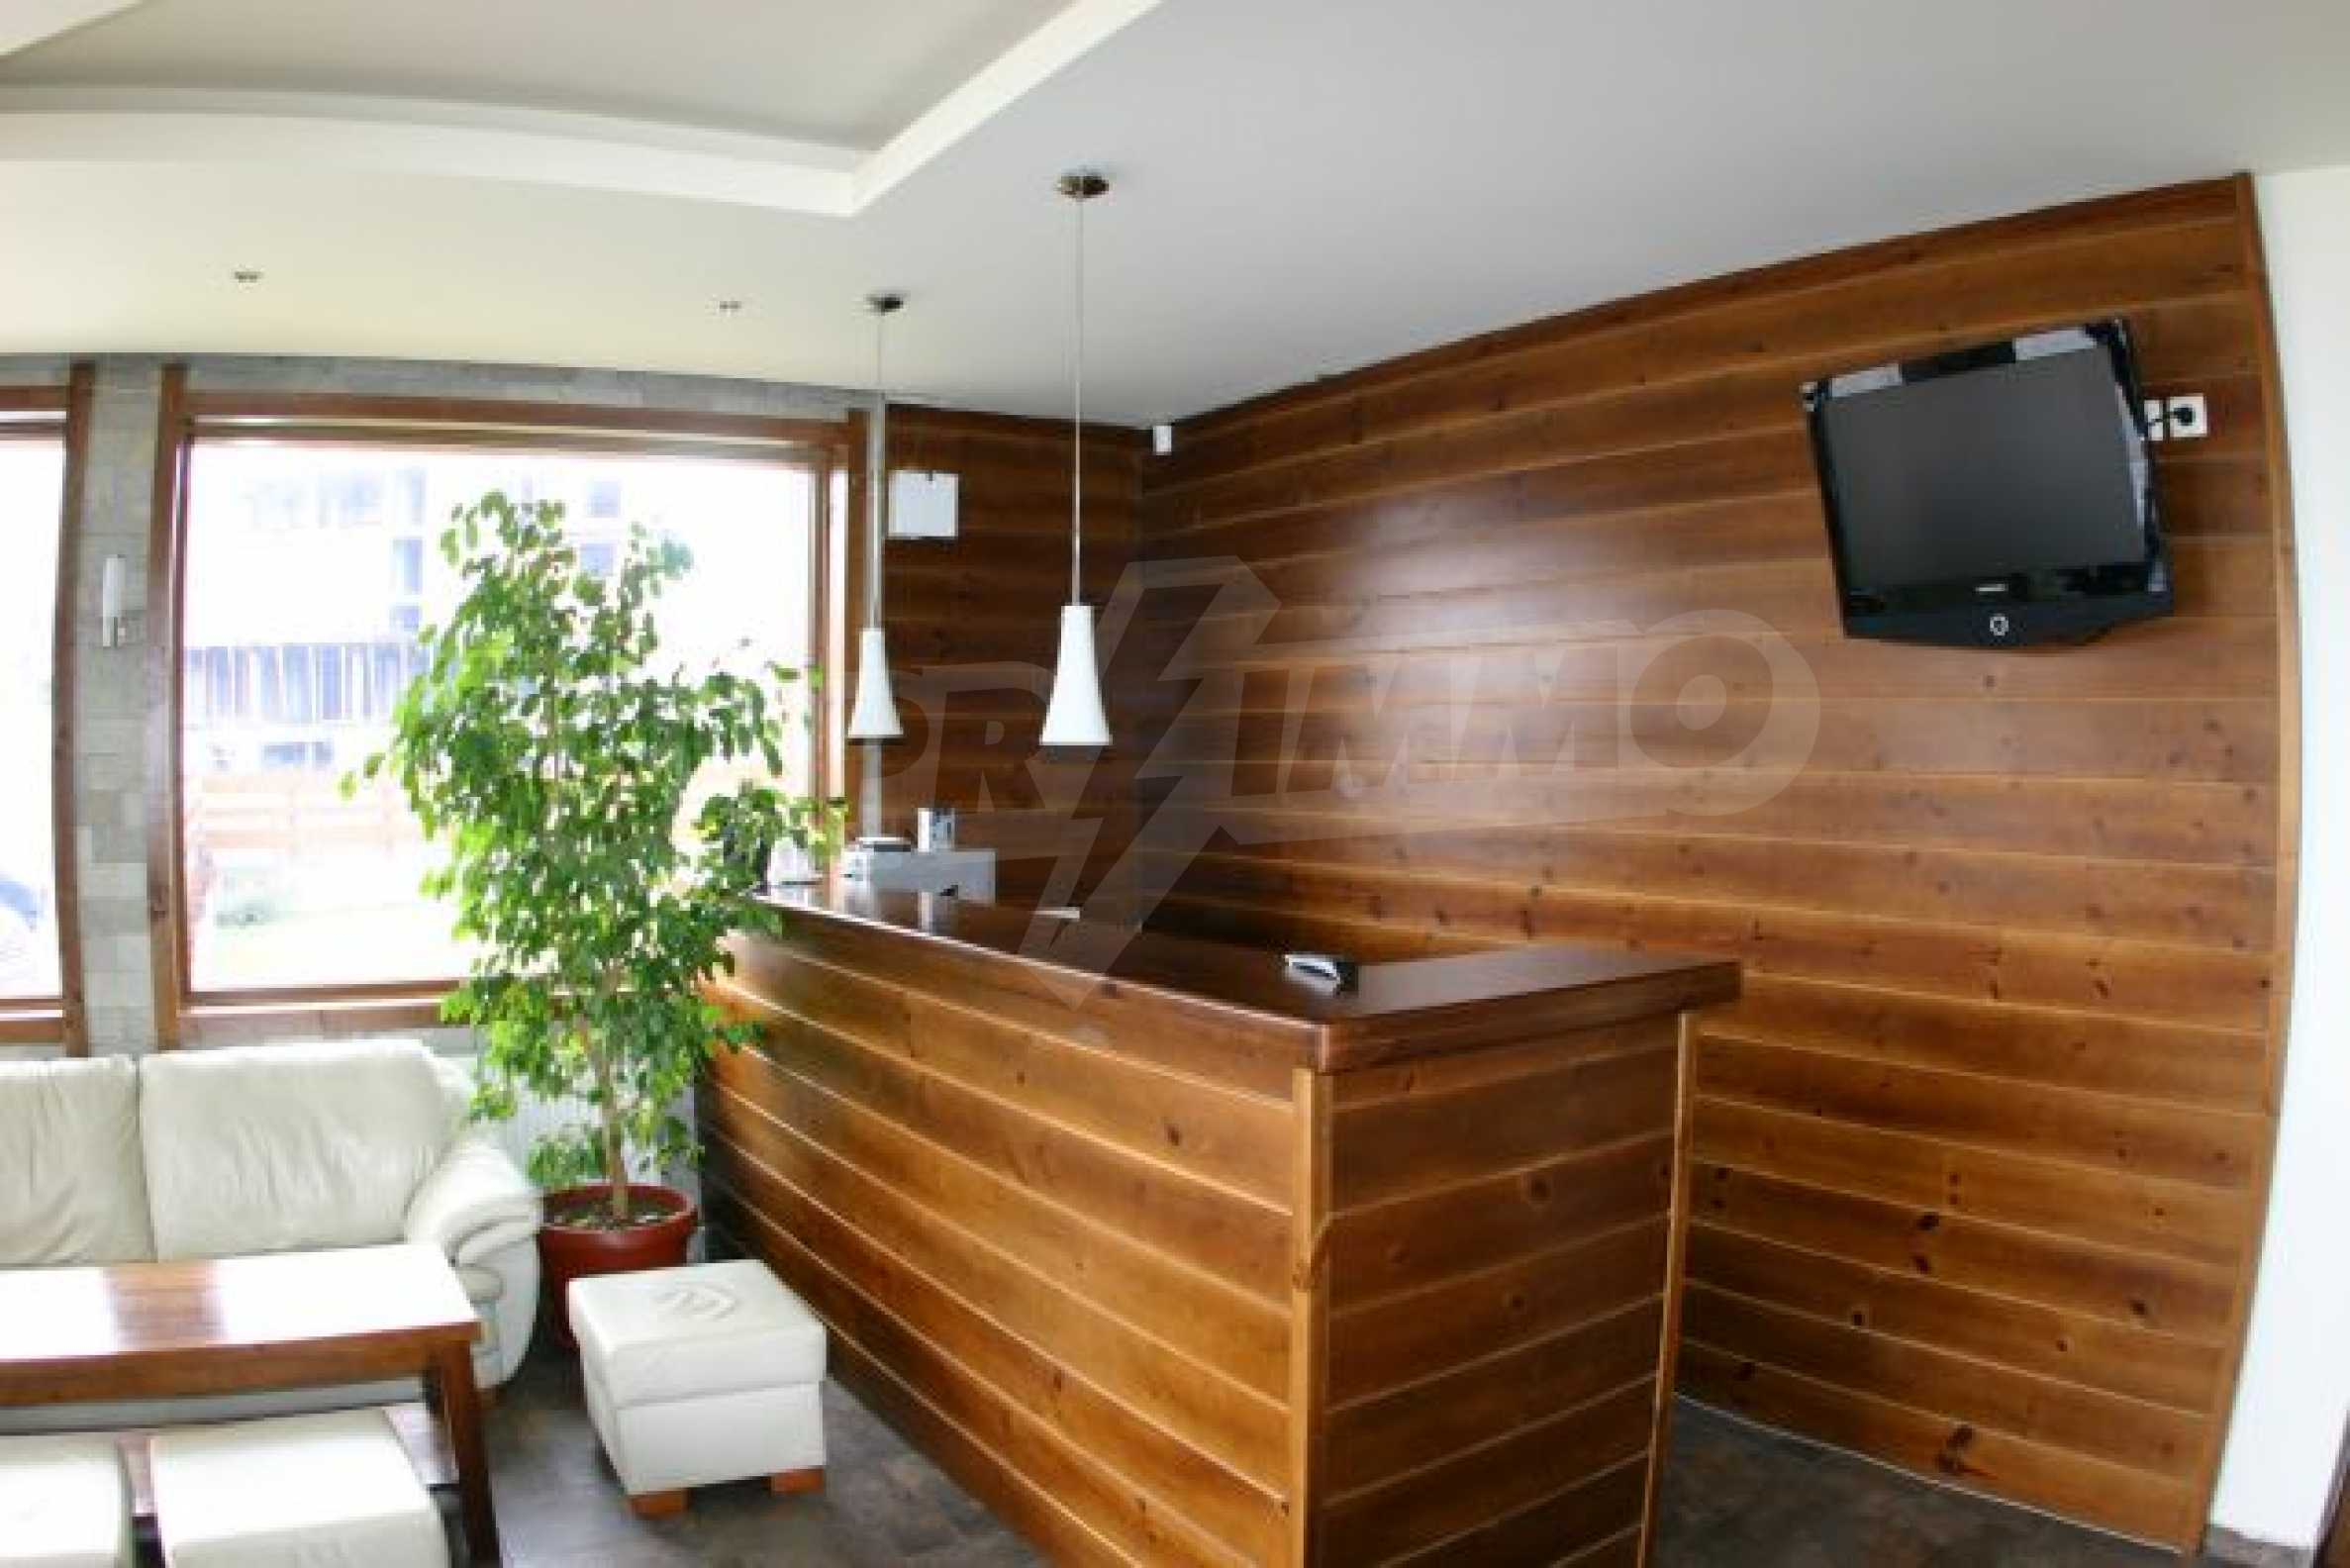 Fully furnished and equipped hotel in an excellent condition in Bansko 4